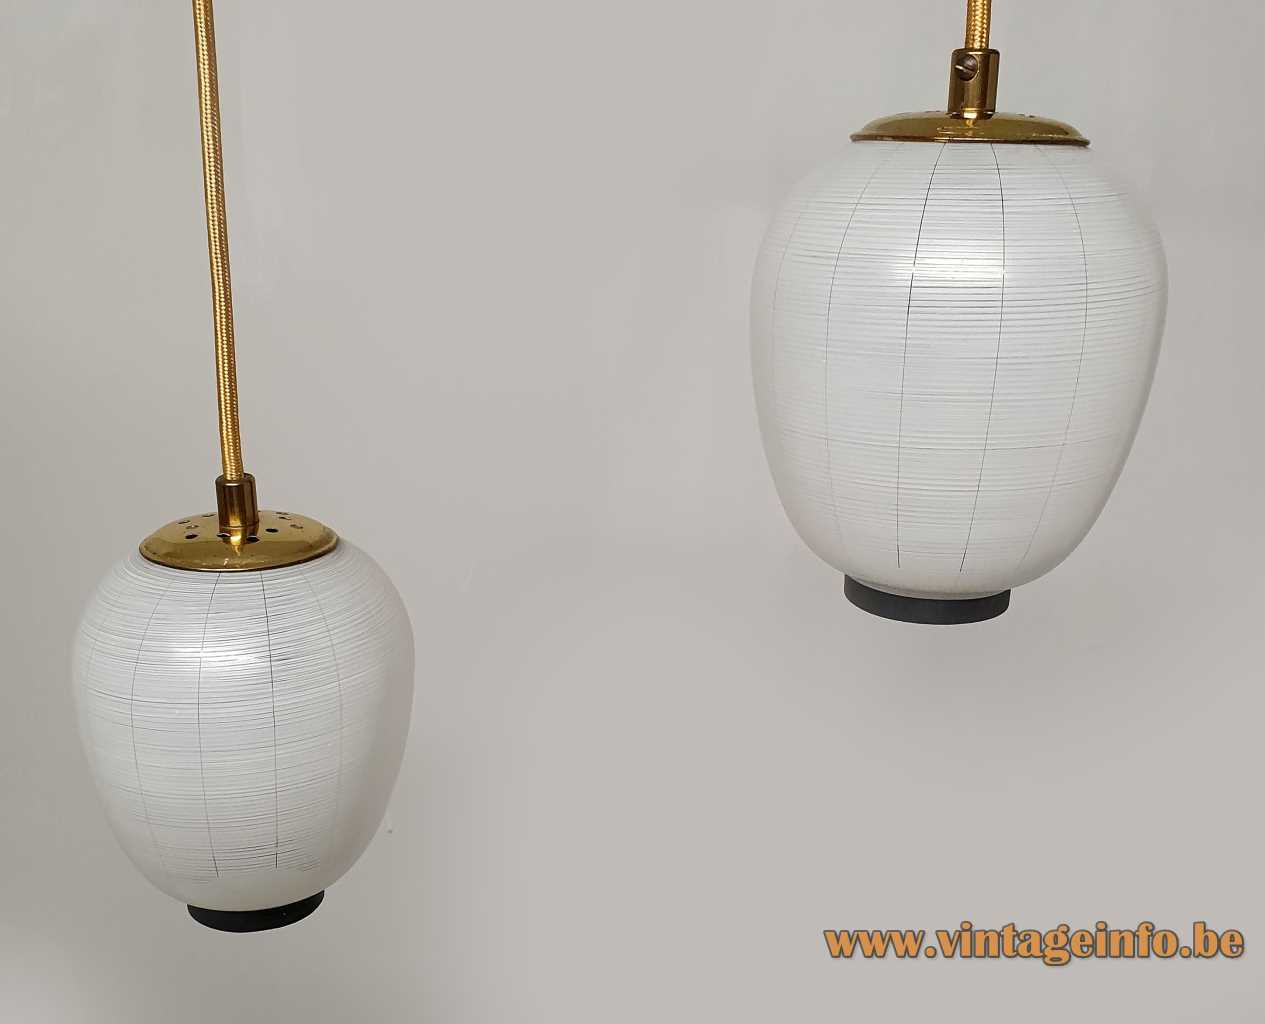 DORIA Mikado pendant chandelier made of two striped glass lampion lampshades brass rod 2 E14 sockets